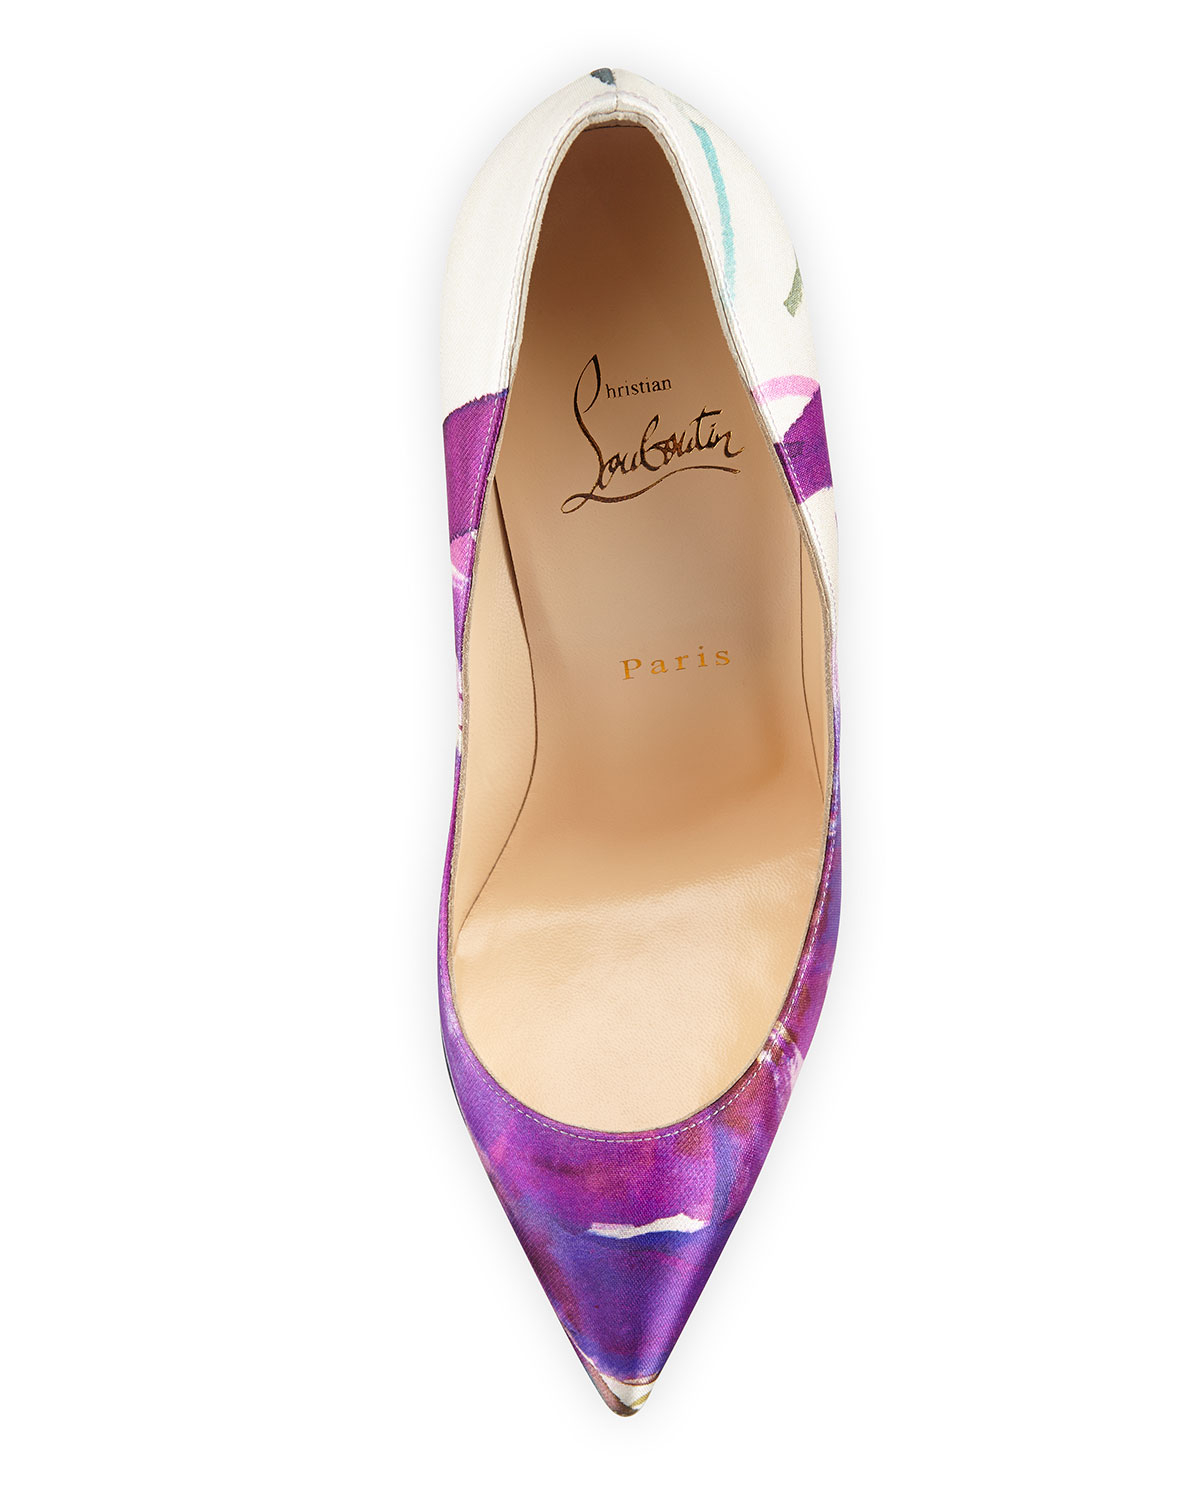 Christian Louboutin Bridal Shoes Blue Sole Christian Louboutin Knockoffs